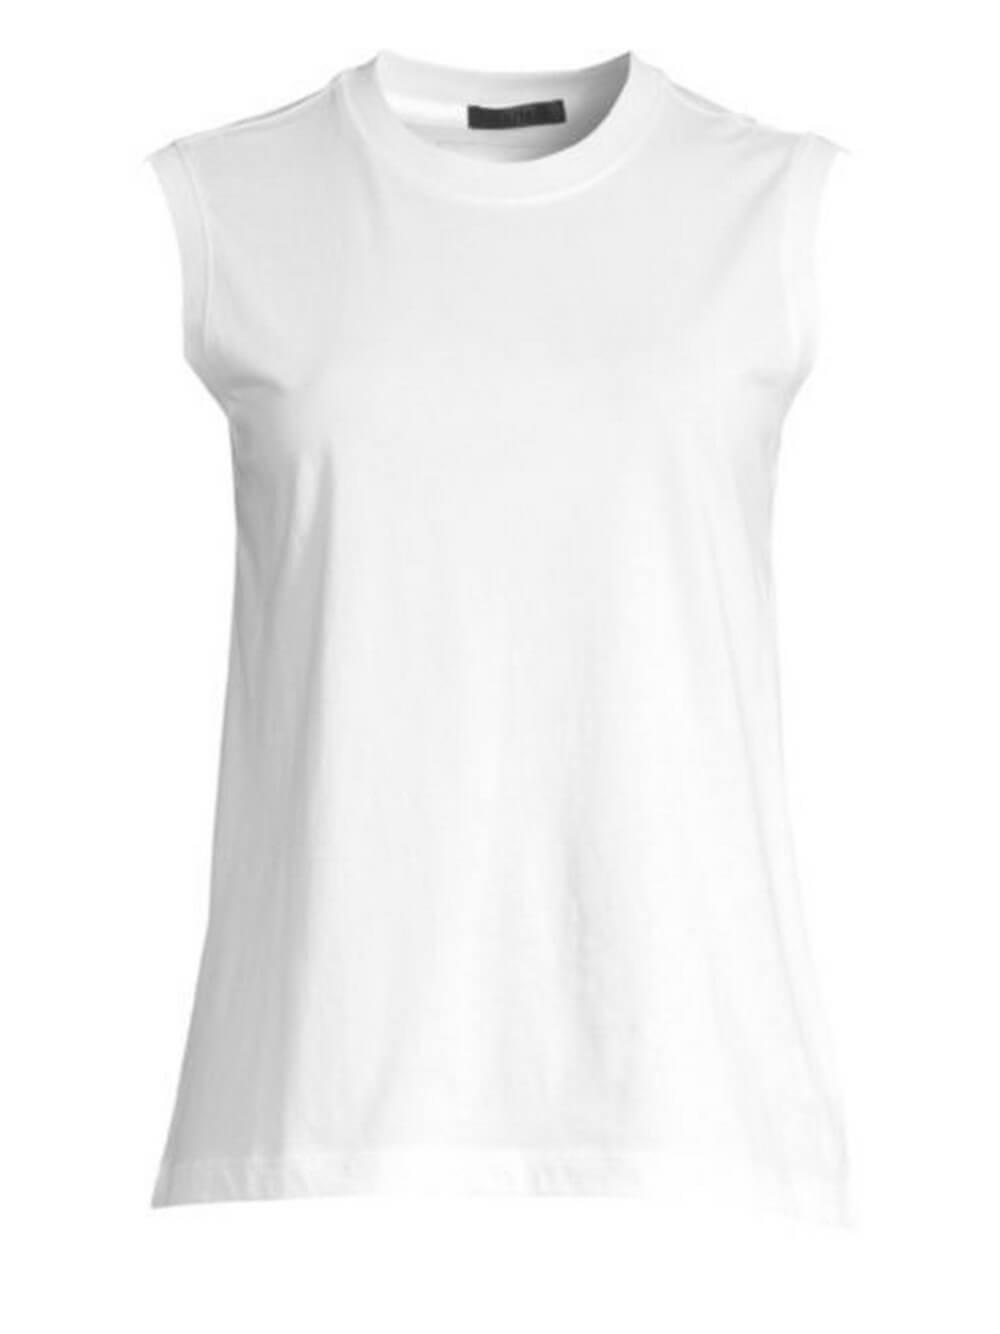 Classic Jersey Muscle Tee Item # AW1322-GAB